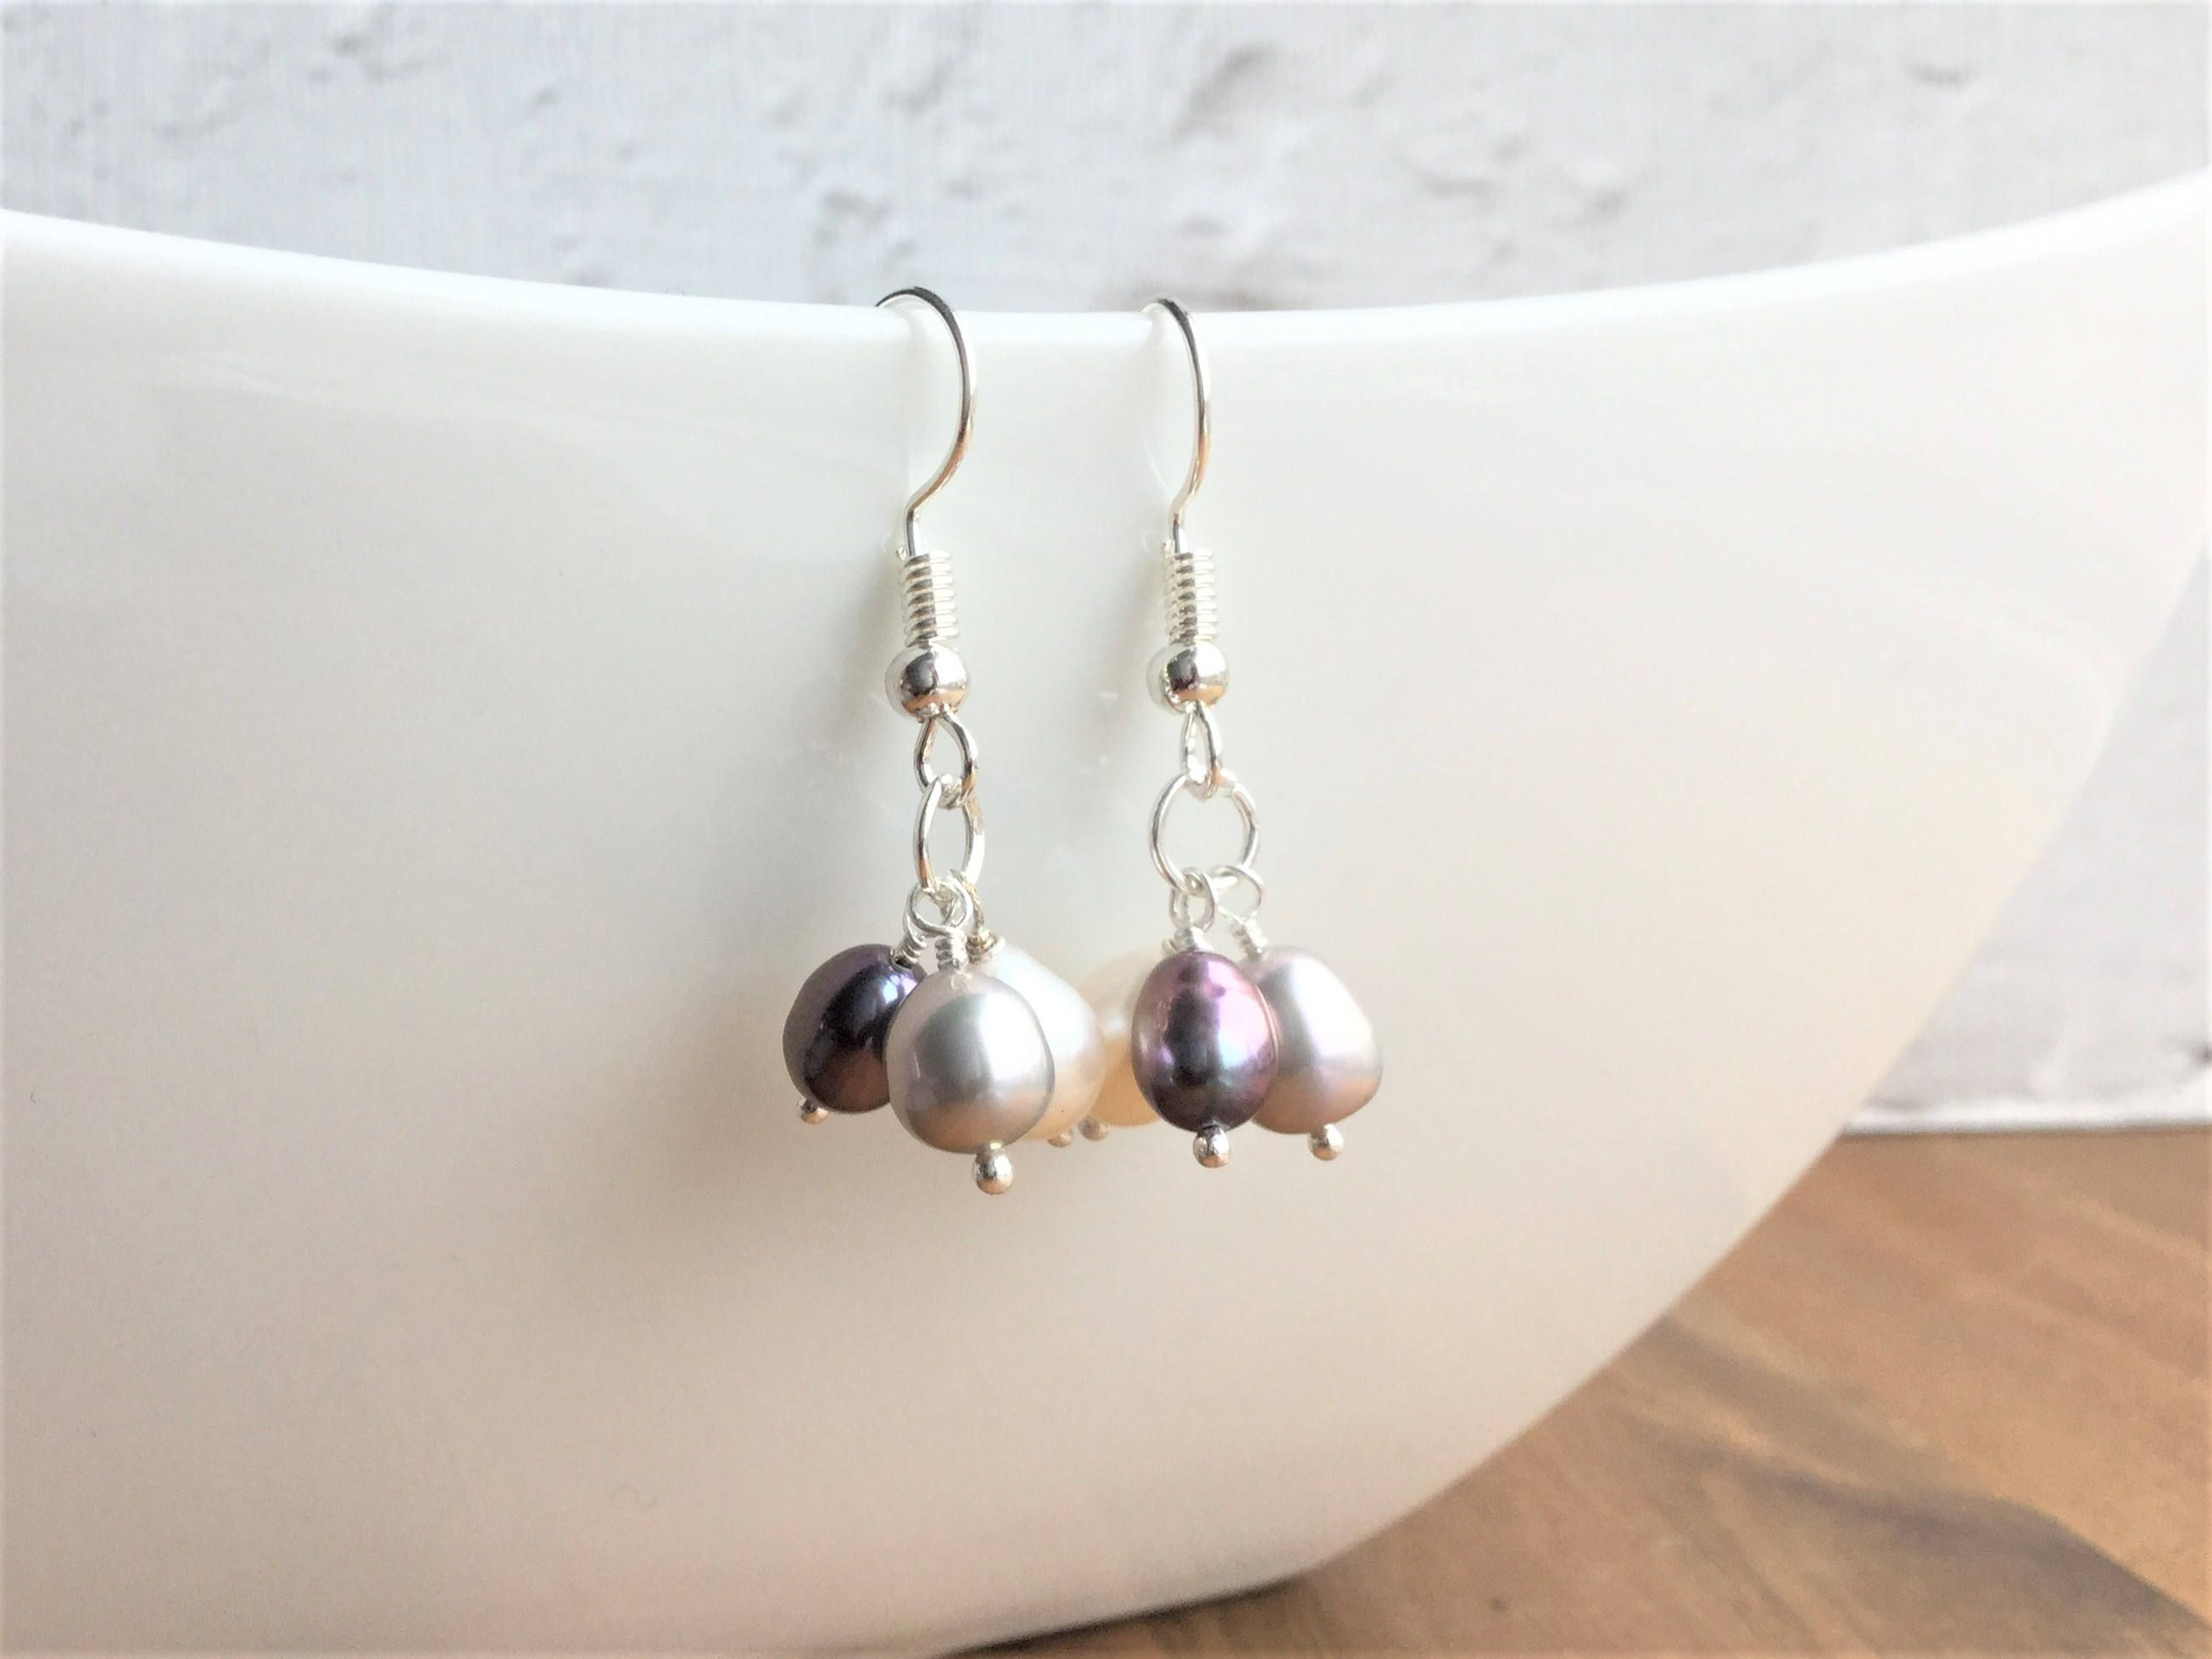 sphere drop enlarged earrings real the jensen realreal jewelry pearl georg products